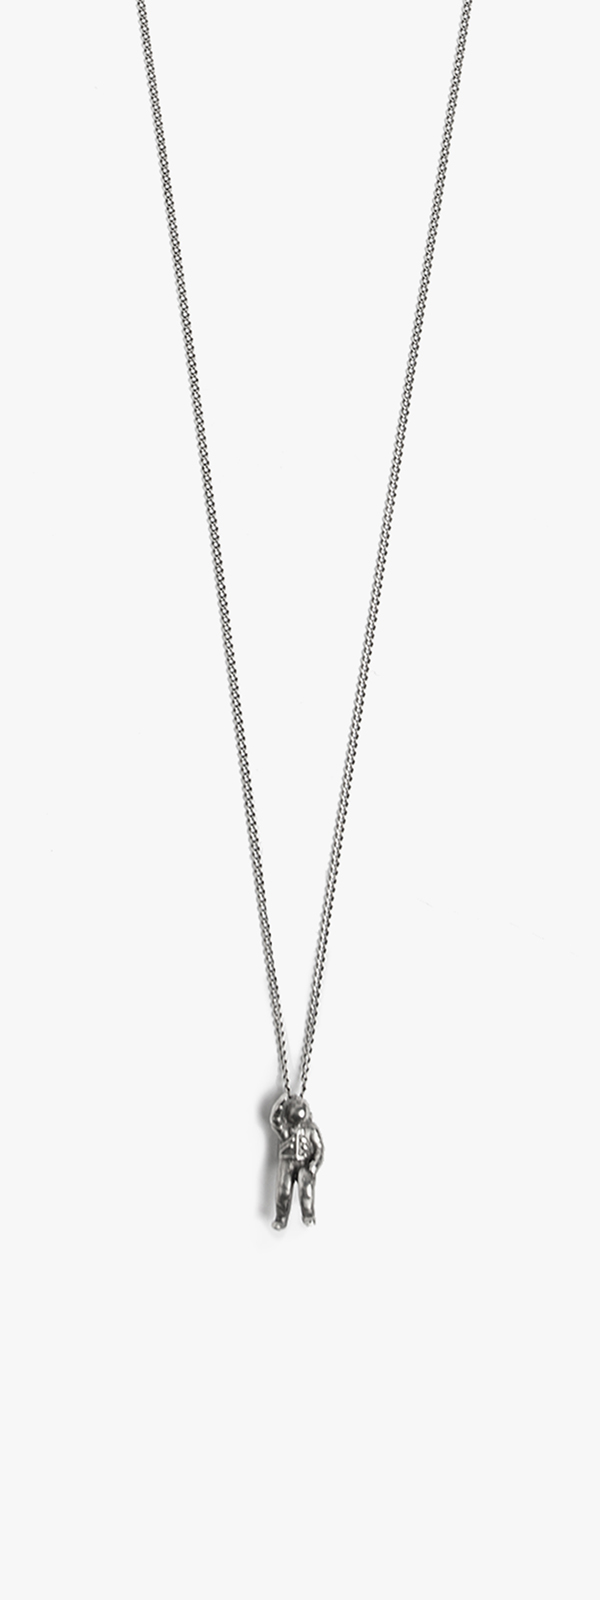 Image of Astronaut Necklace 041